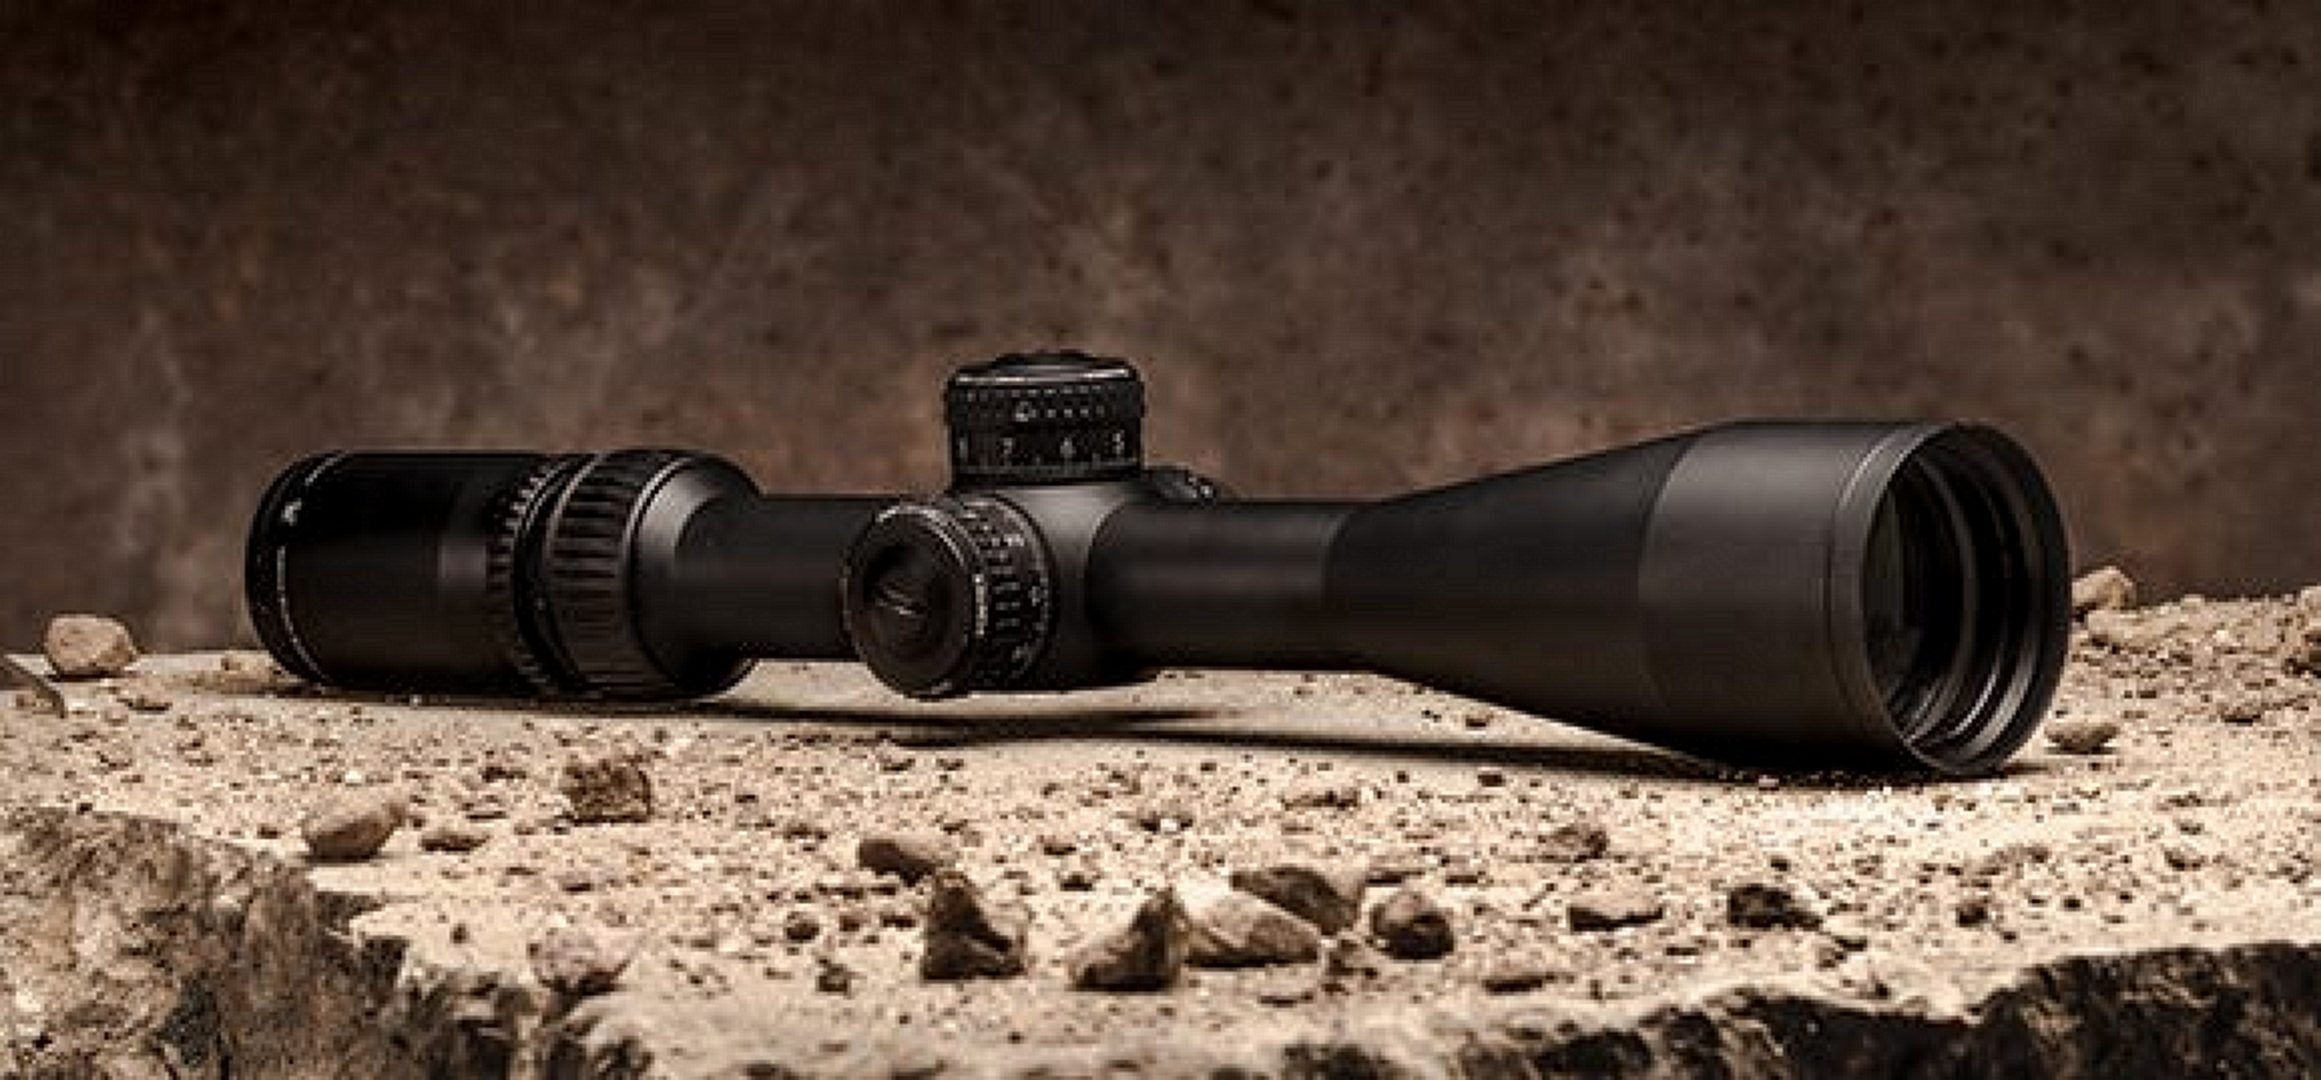 Best Scopes Under $500 – Top Rated Mid-Range Optics Classified by Shooting Activities